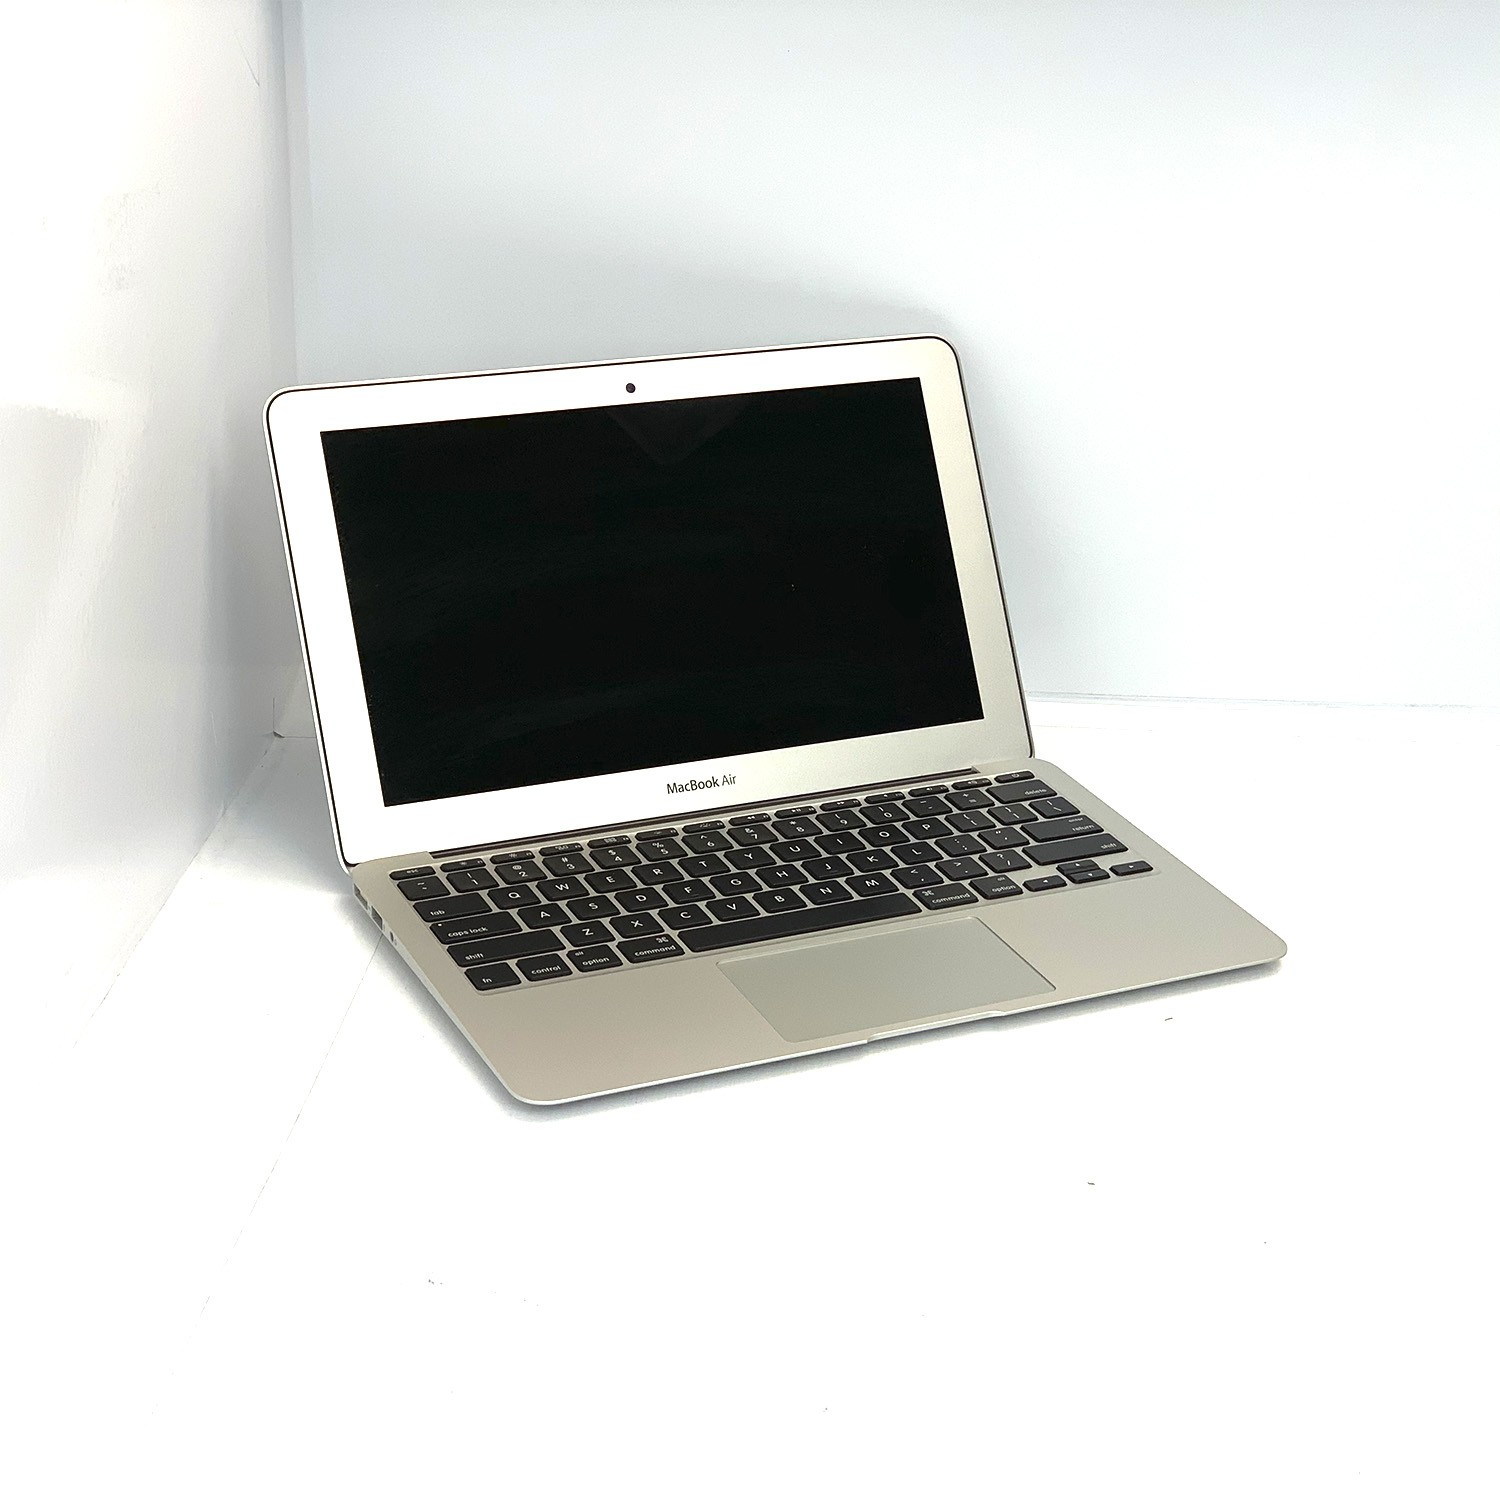 Macbook Air 11 i5 1.6Ghz 4GB 256GB SSD MJVM2LL/A Seminovo